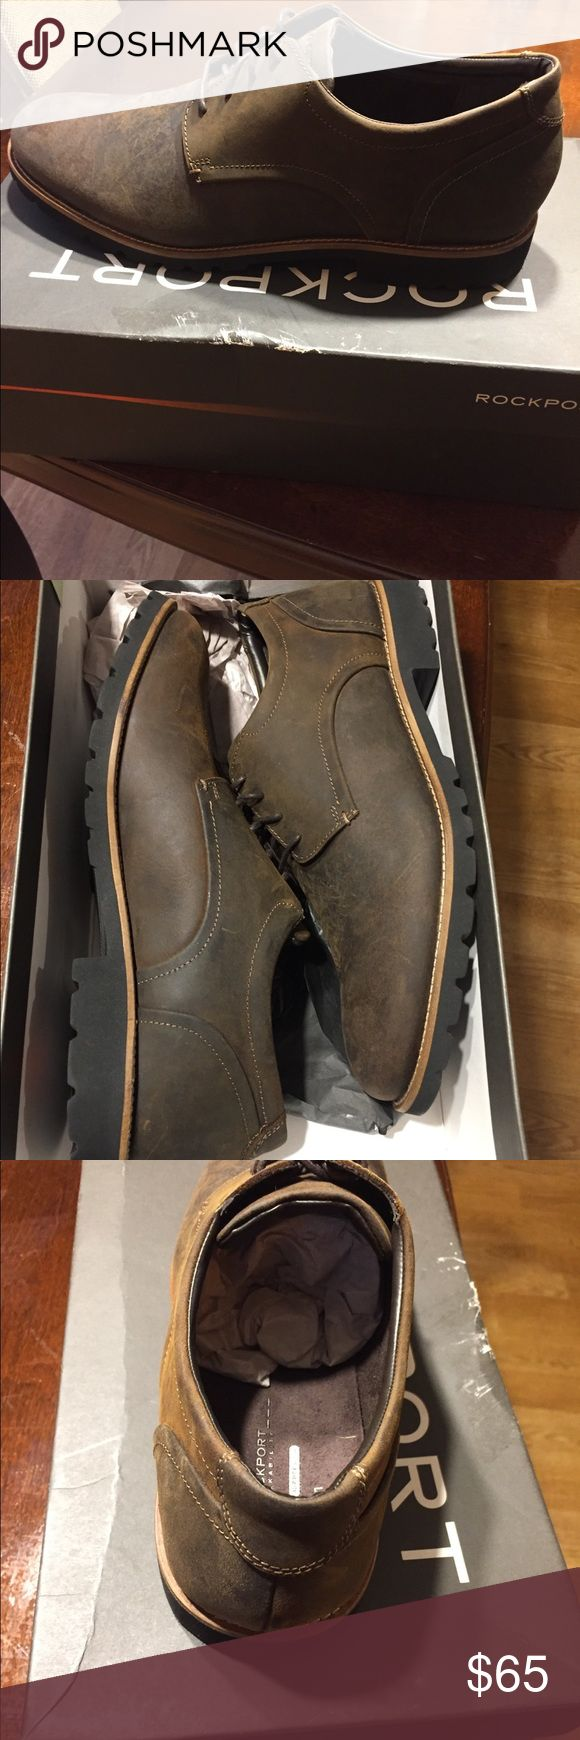 RockPort shoes Brand New!! Brand New  in the box Rockport Shoes